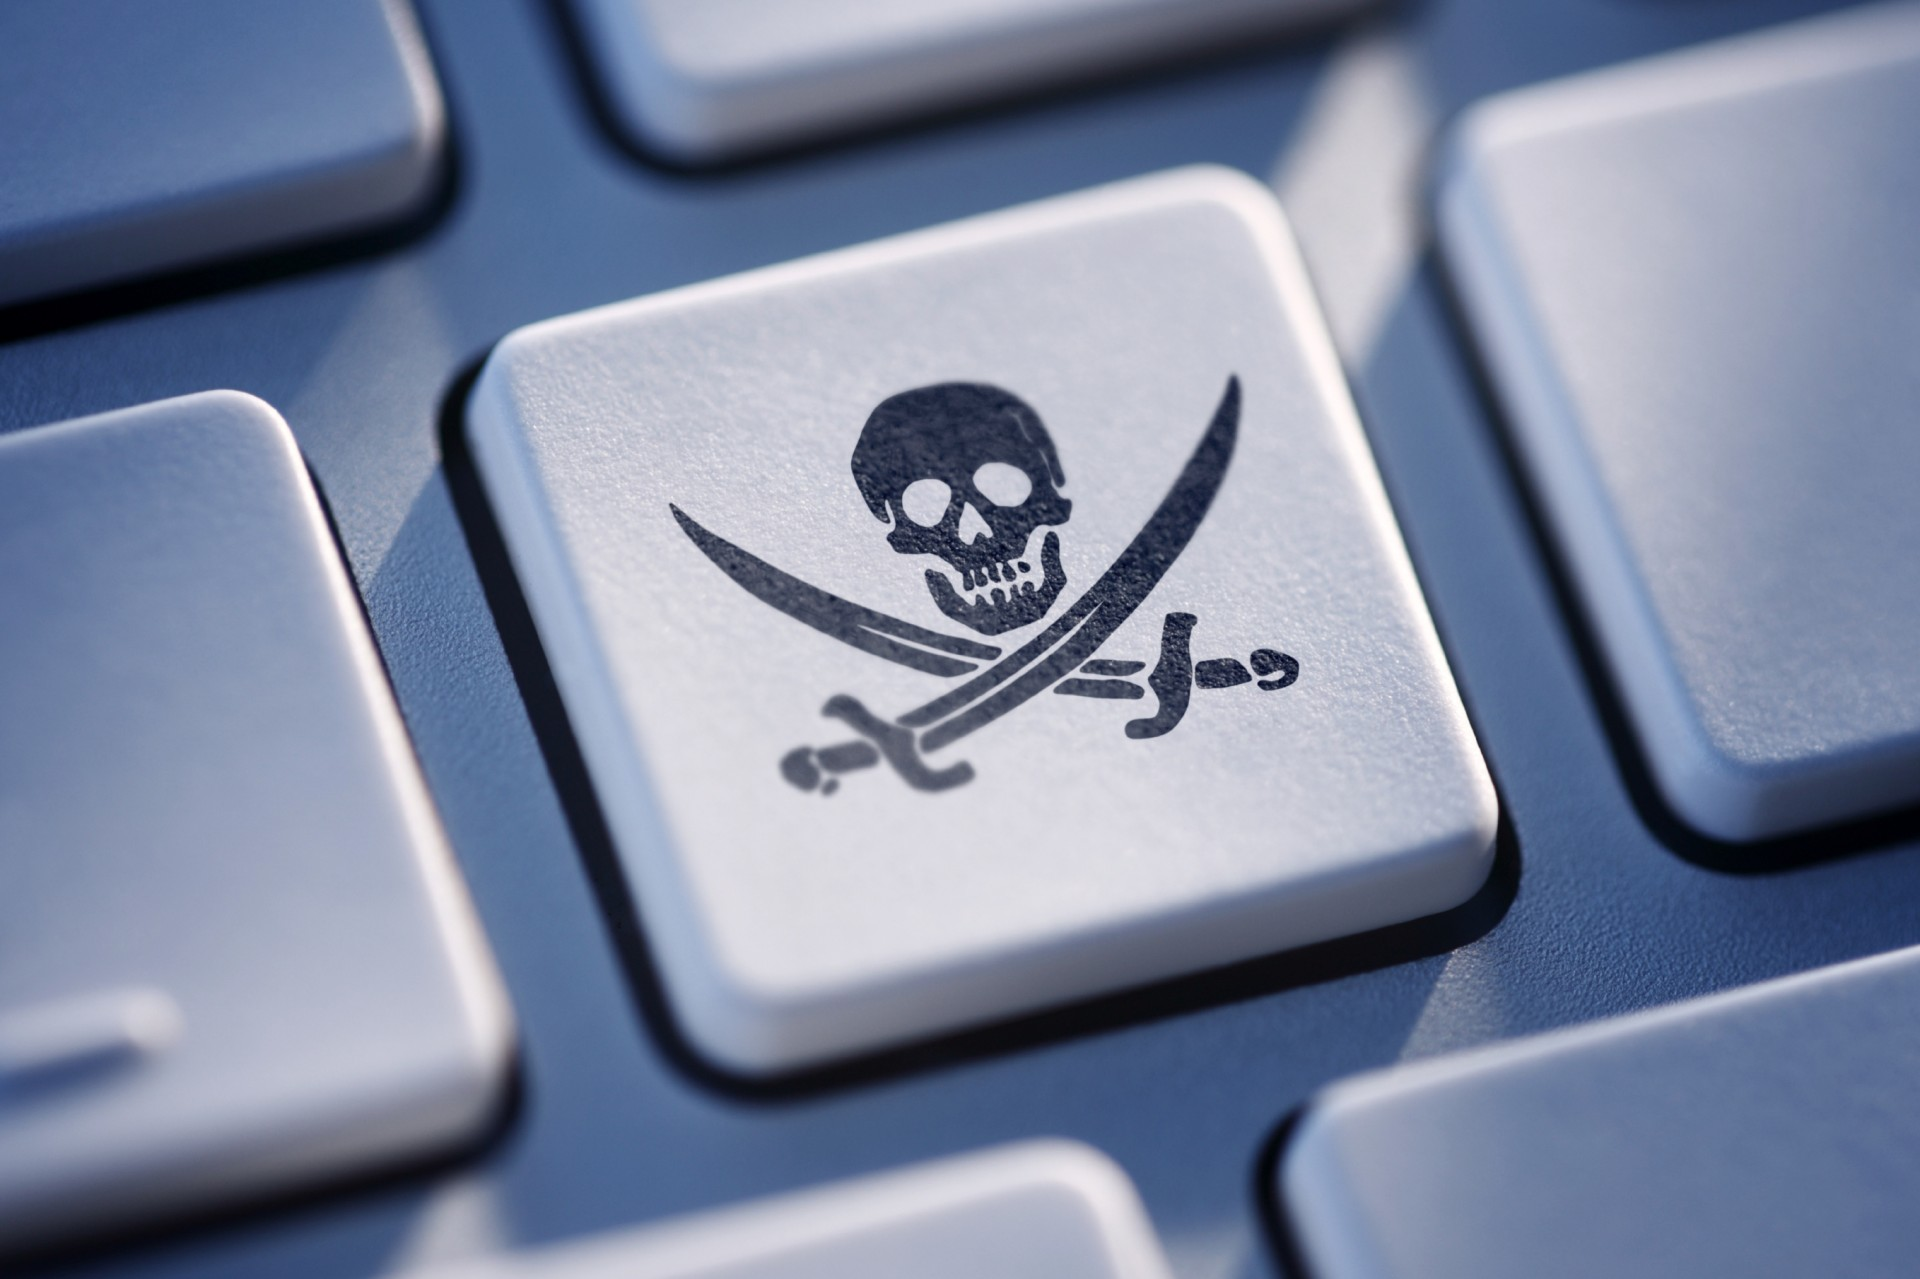 016 Istock 000020208970 Large Pirate Website For Researchs Amazing Research Papers 1920